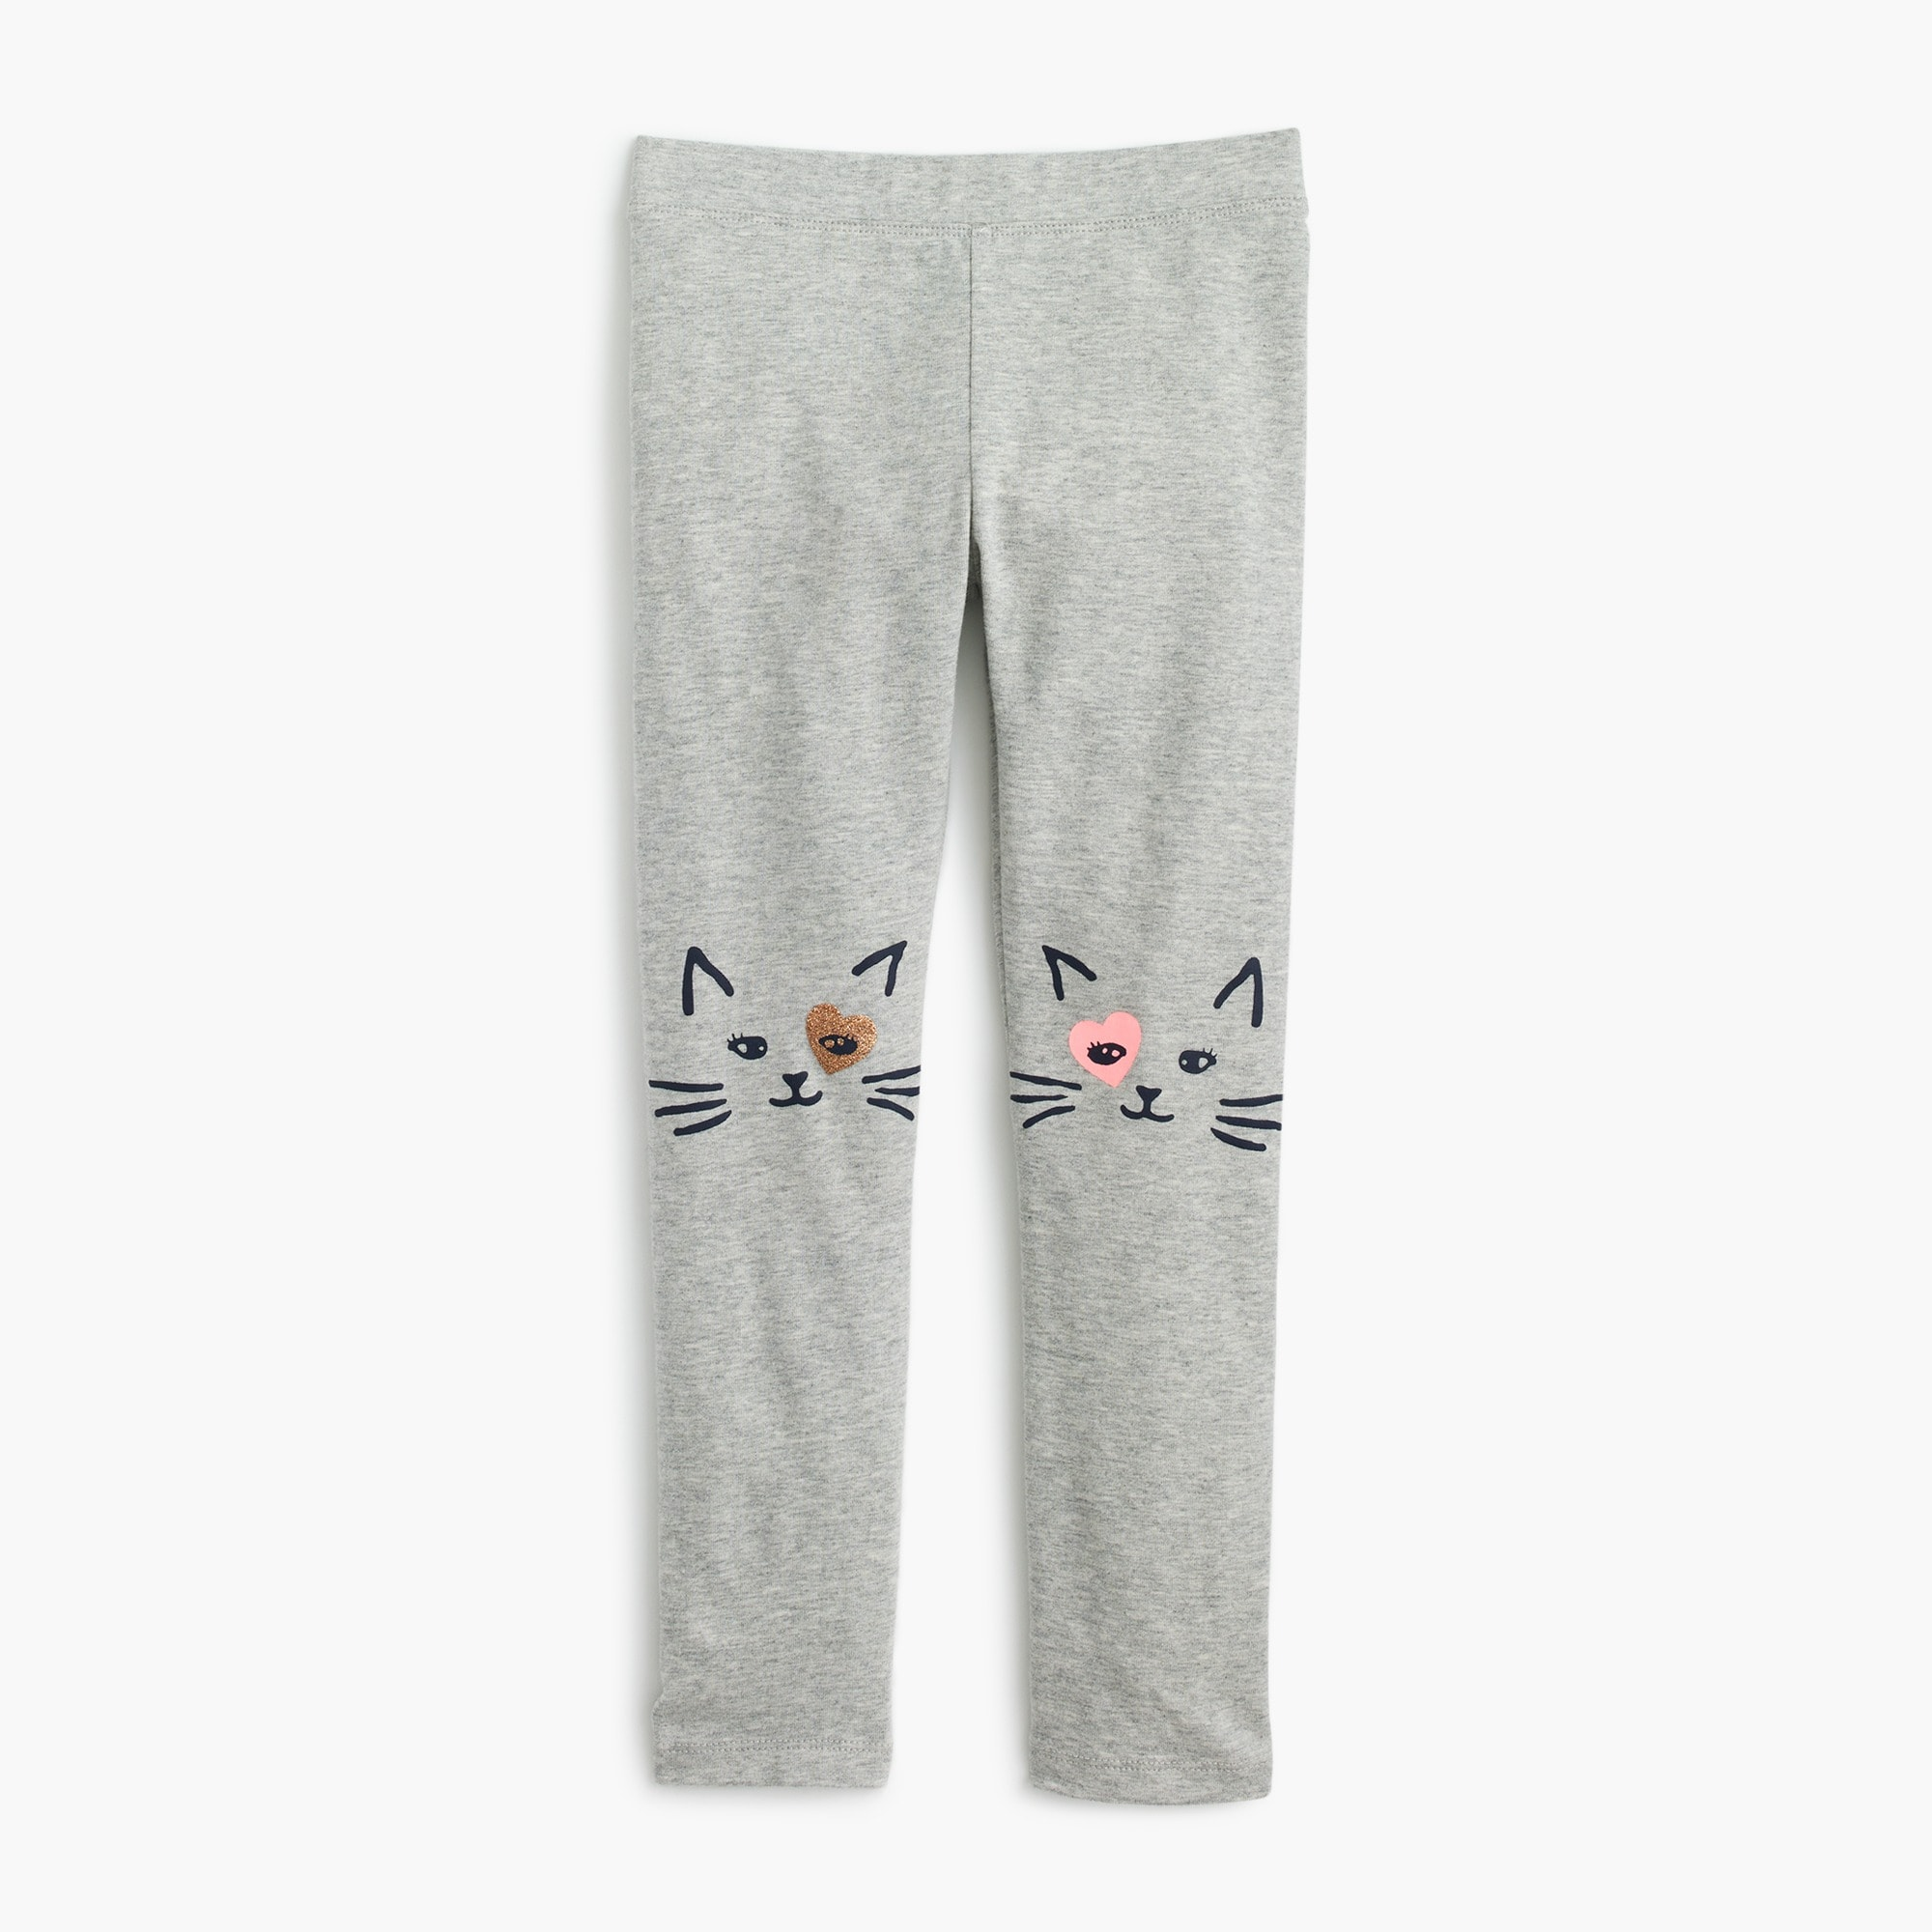 girls' everyday leggings with kitten knees : girl pants